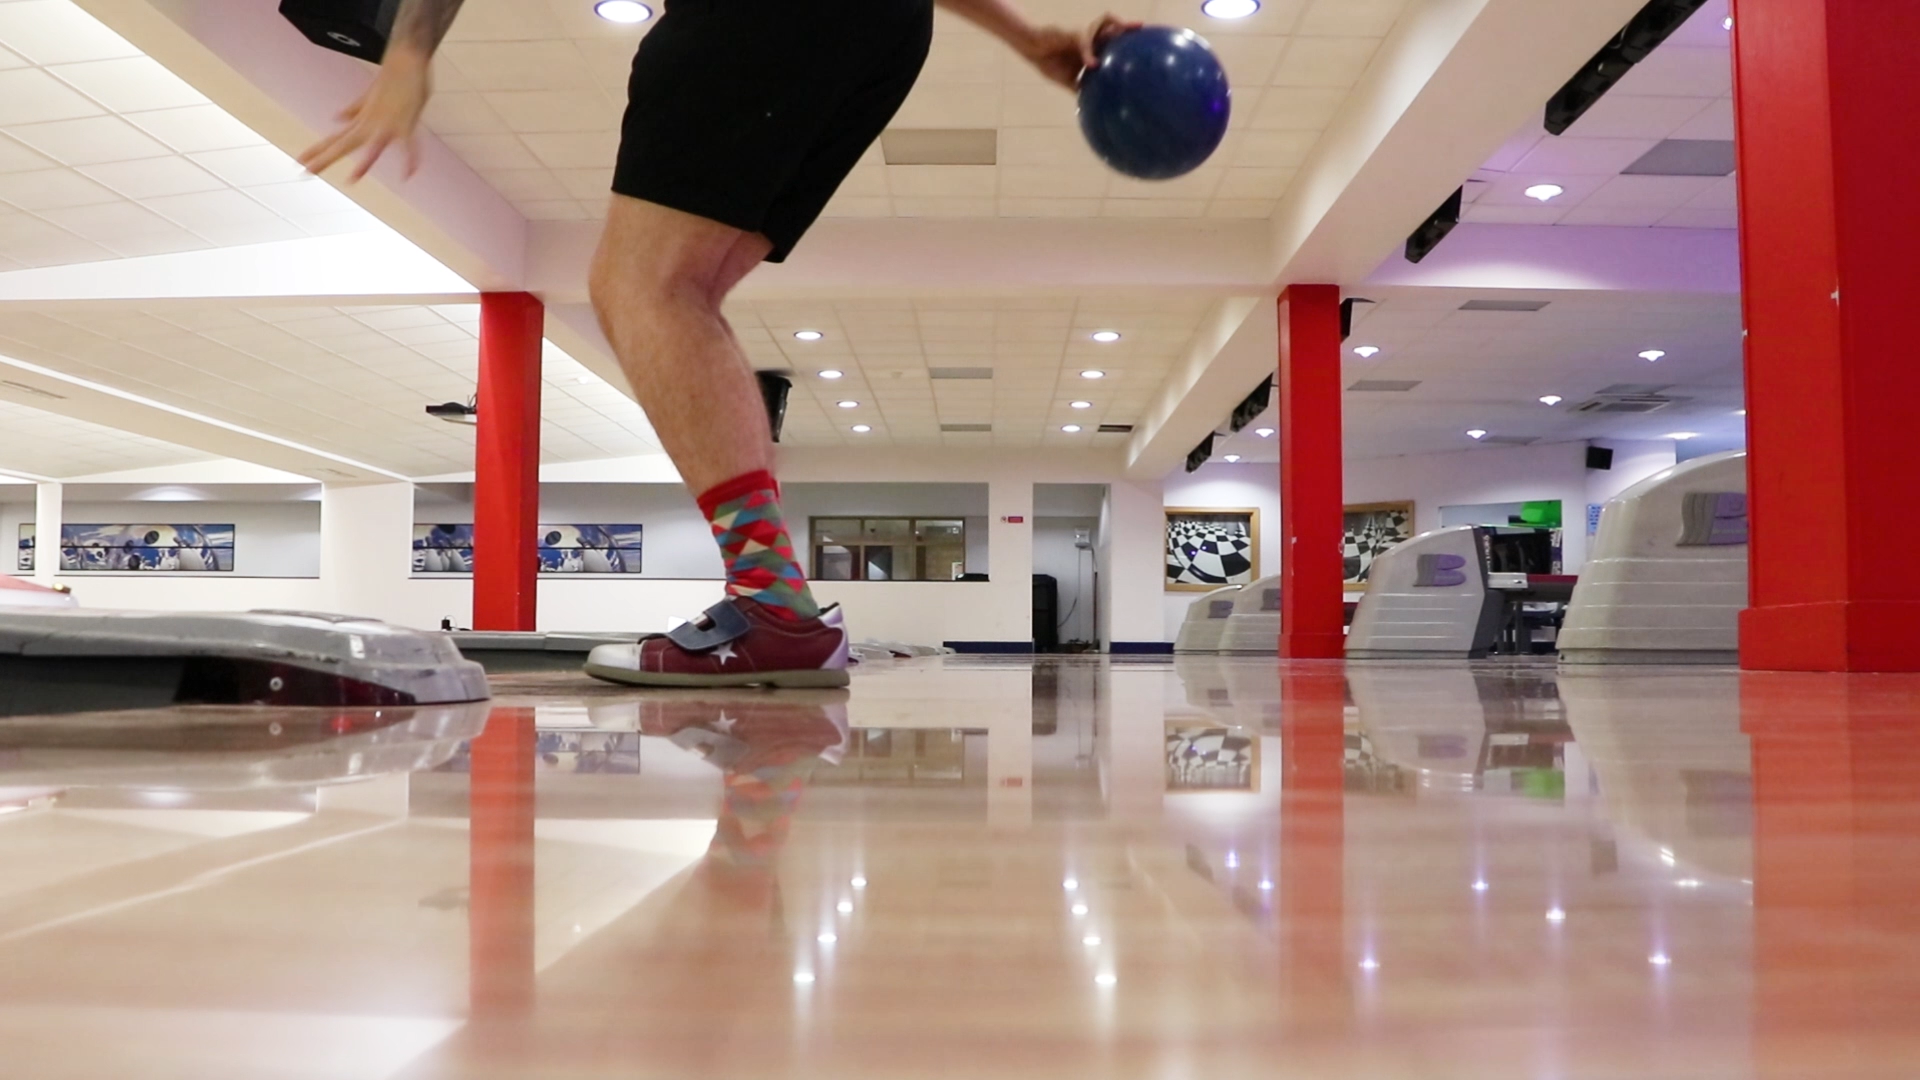 If you're looking for things to do in Surrey with the kids then Bowling at Farnborough Bowl is a must.